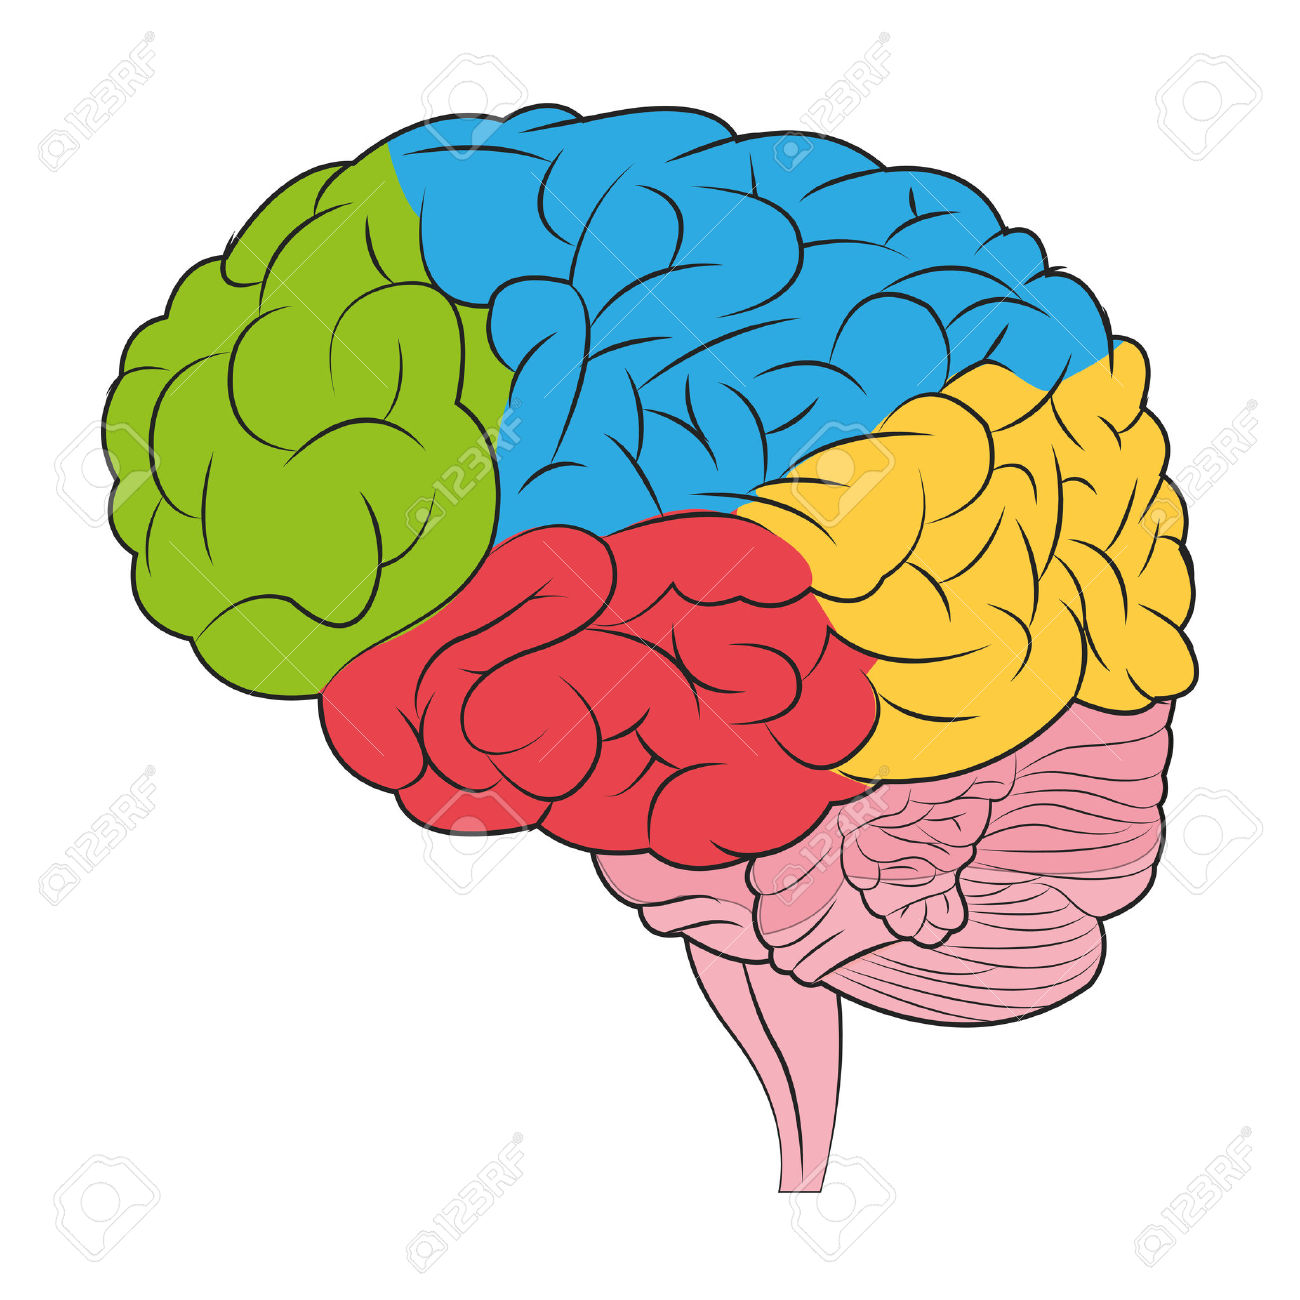 Human Brain Clipart   Free download on ClipArtMag (1300 x 1300 Pixel)